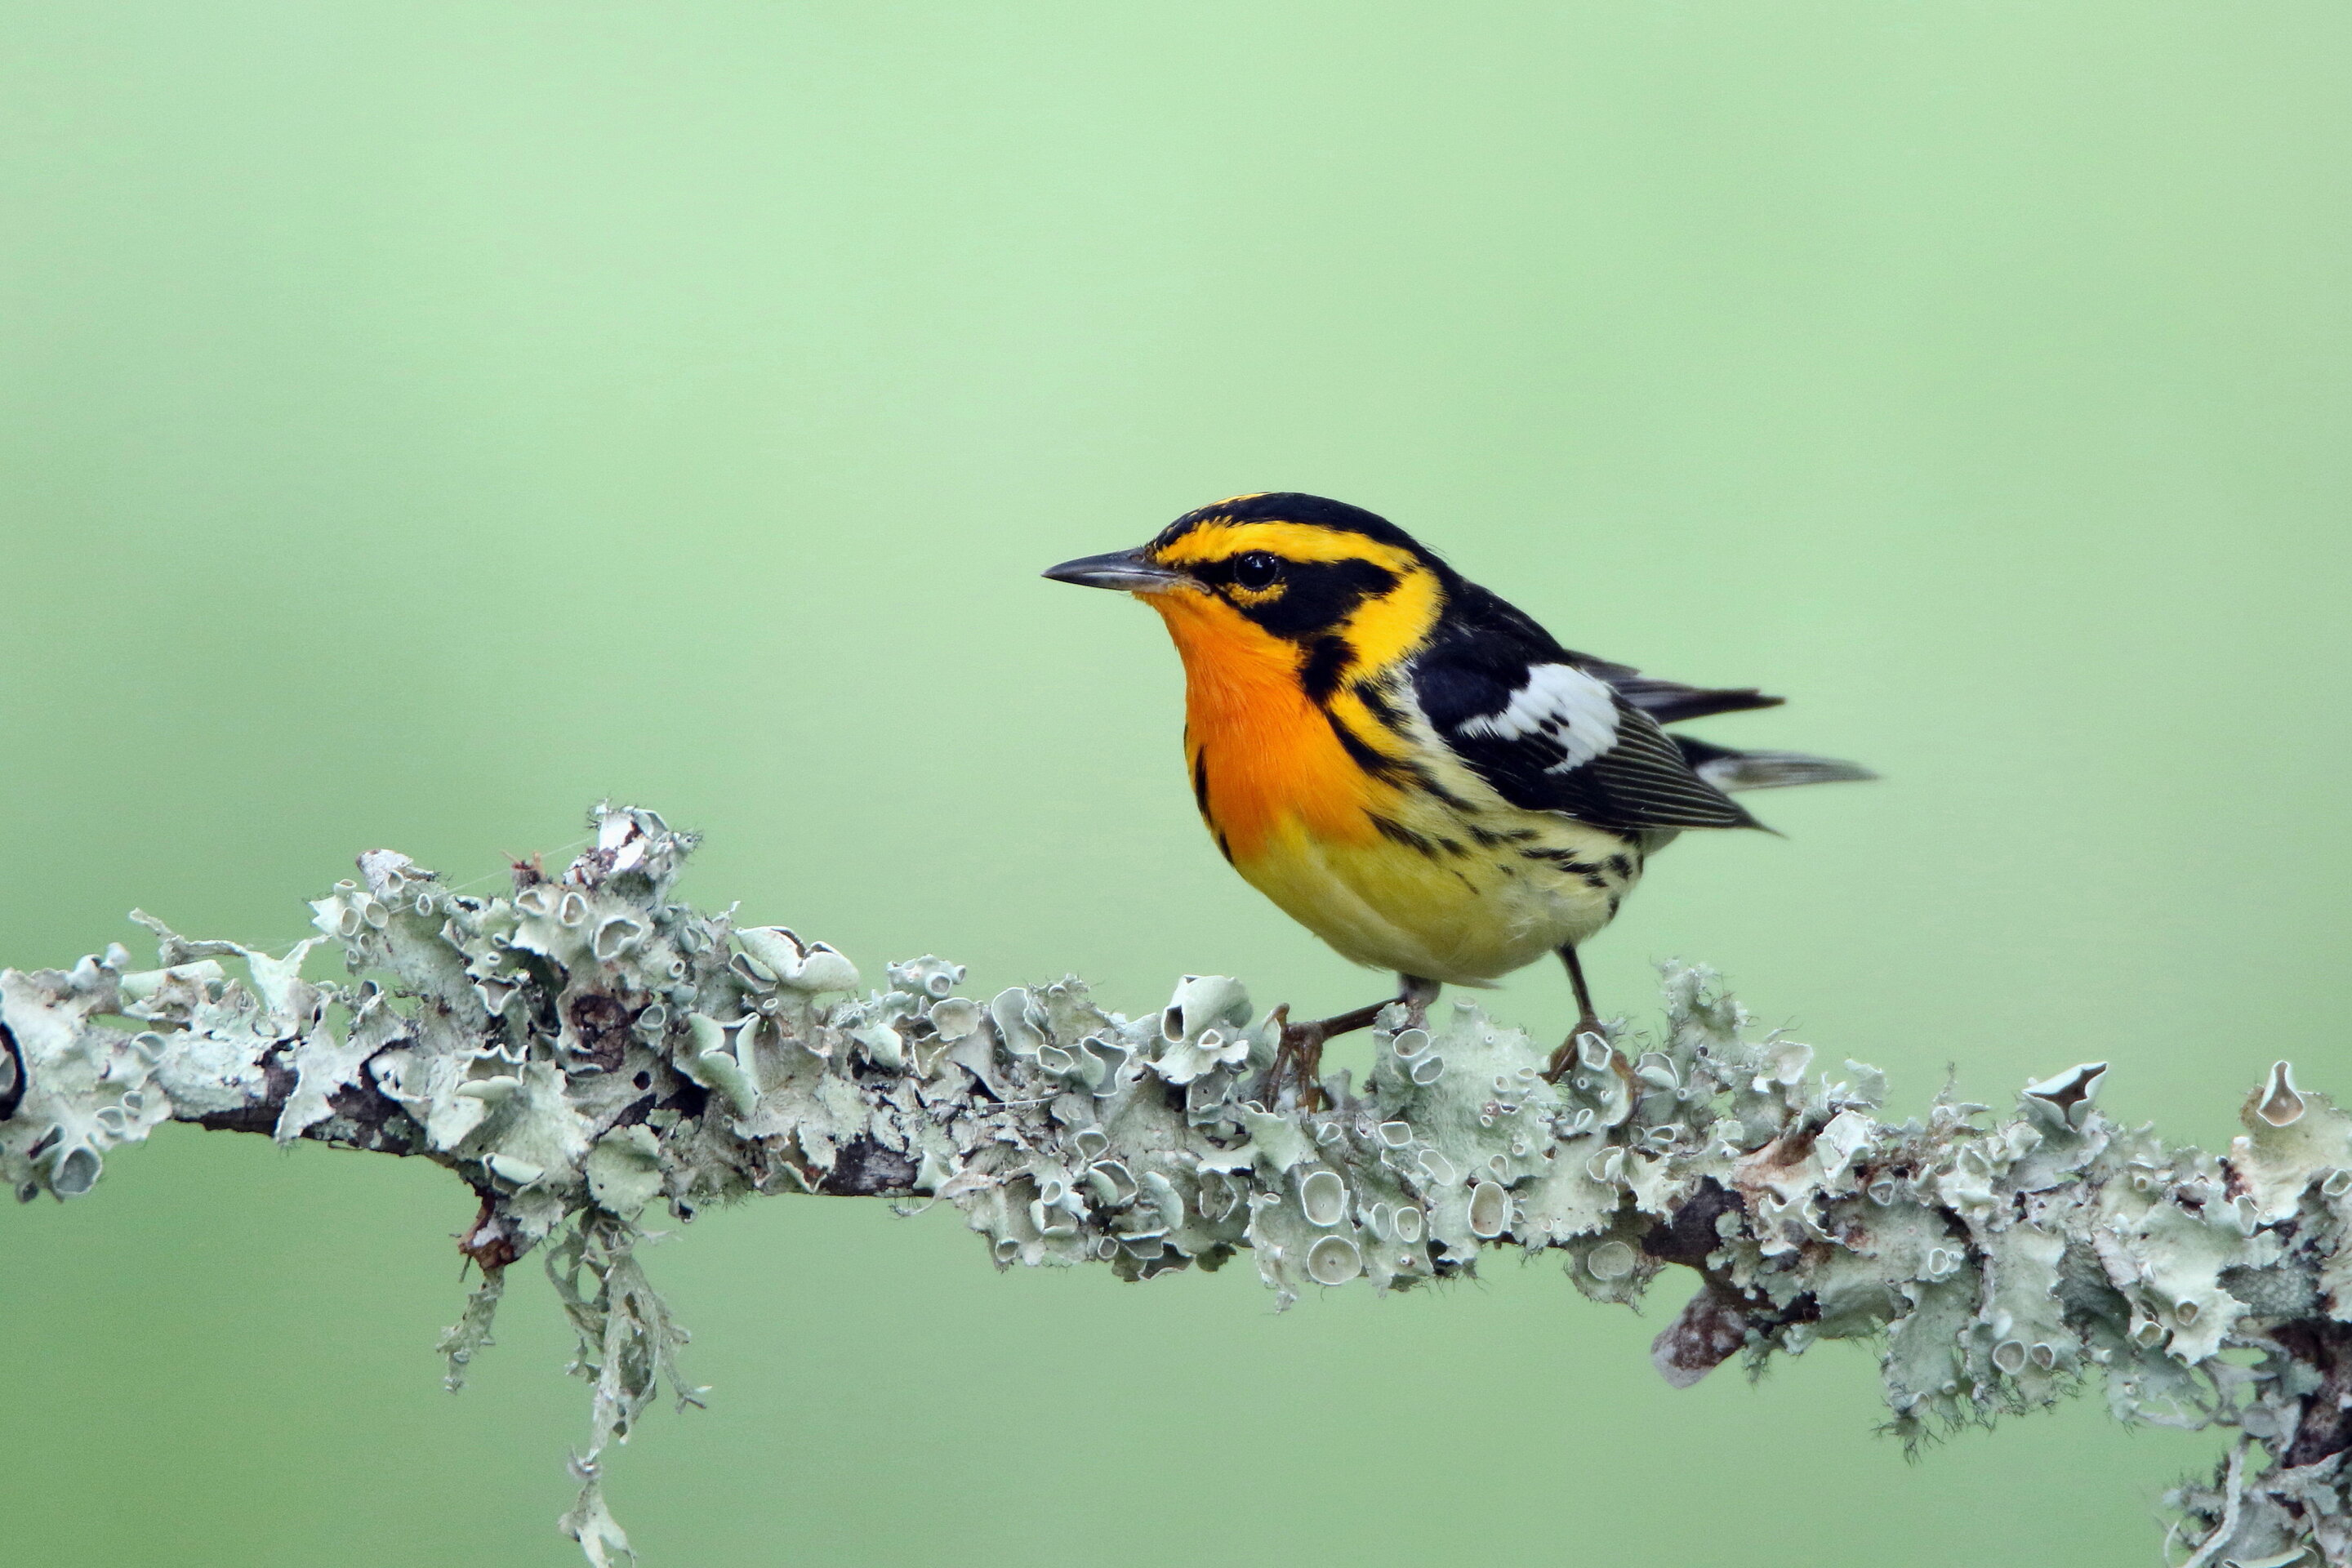 Warbler coloration shaped by evolution via distinct paths